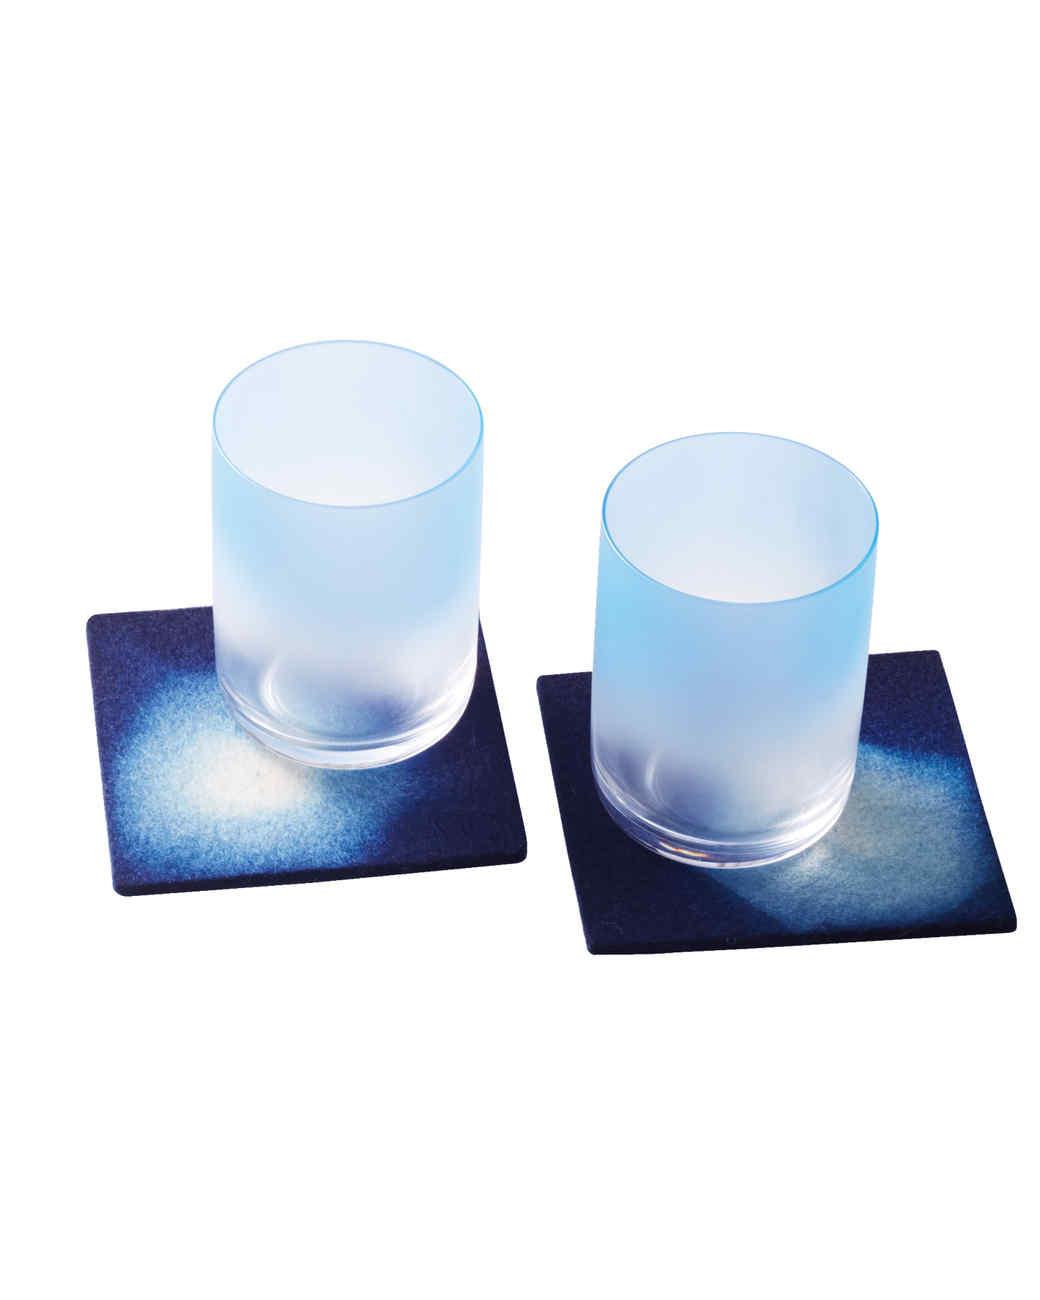 blue-glasses-with-coasters-308-d112494.jpg